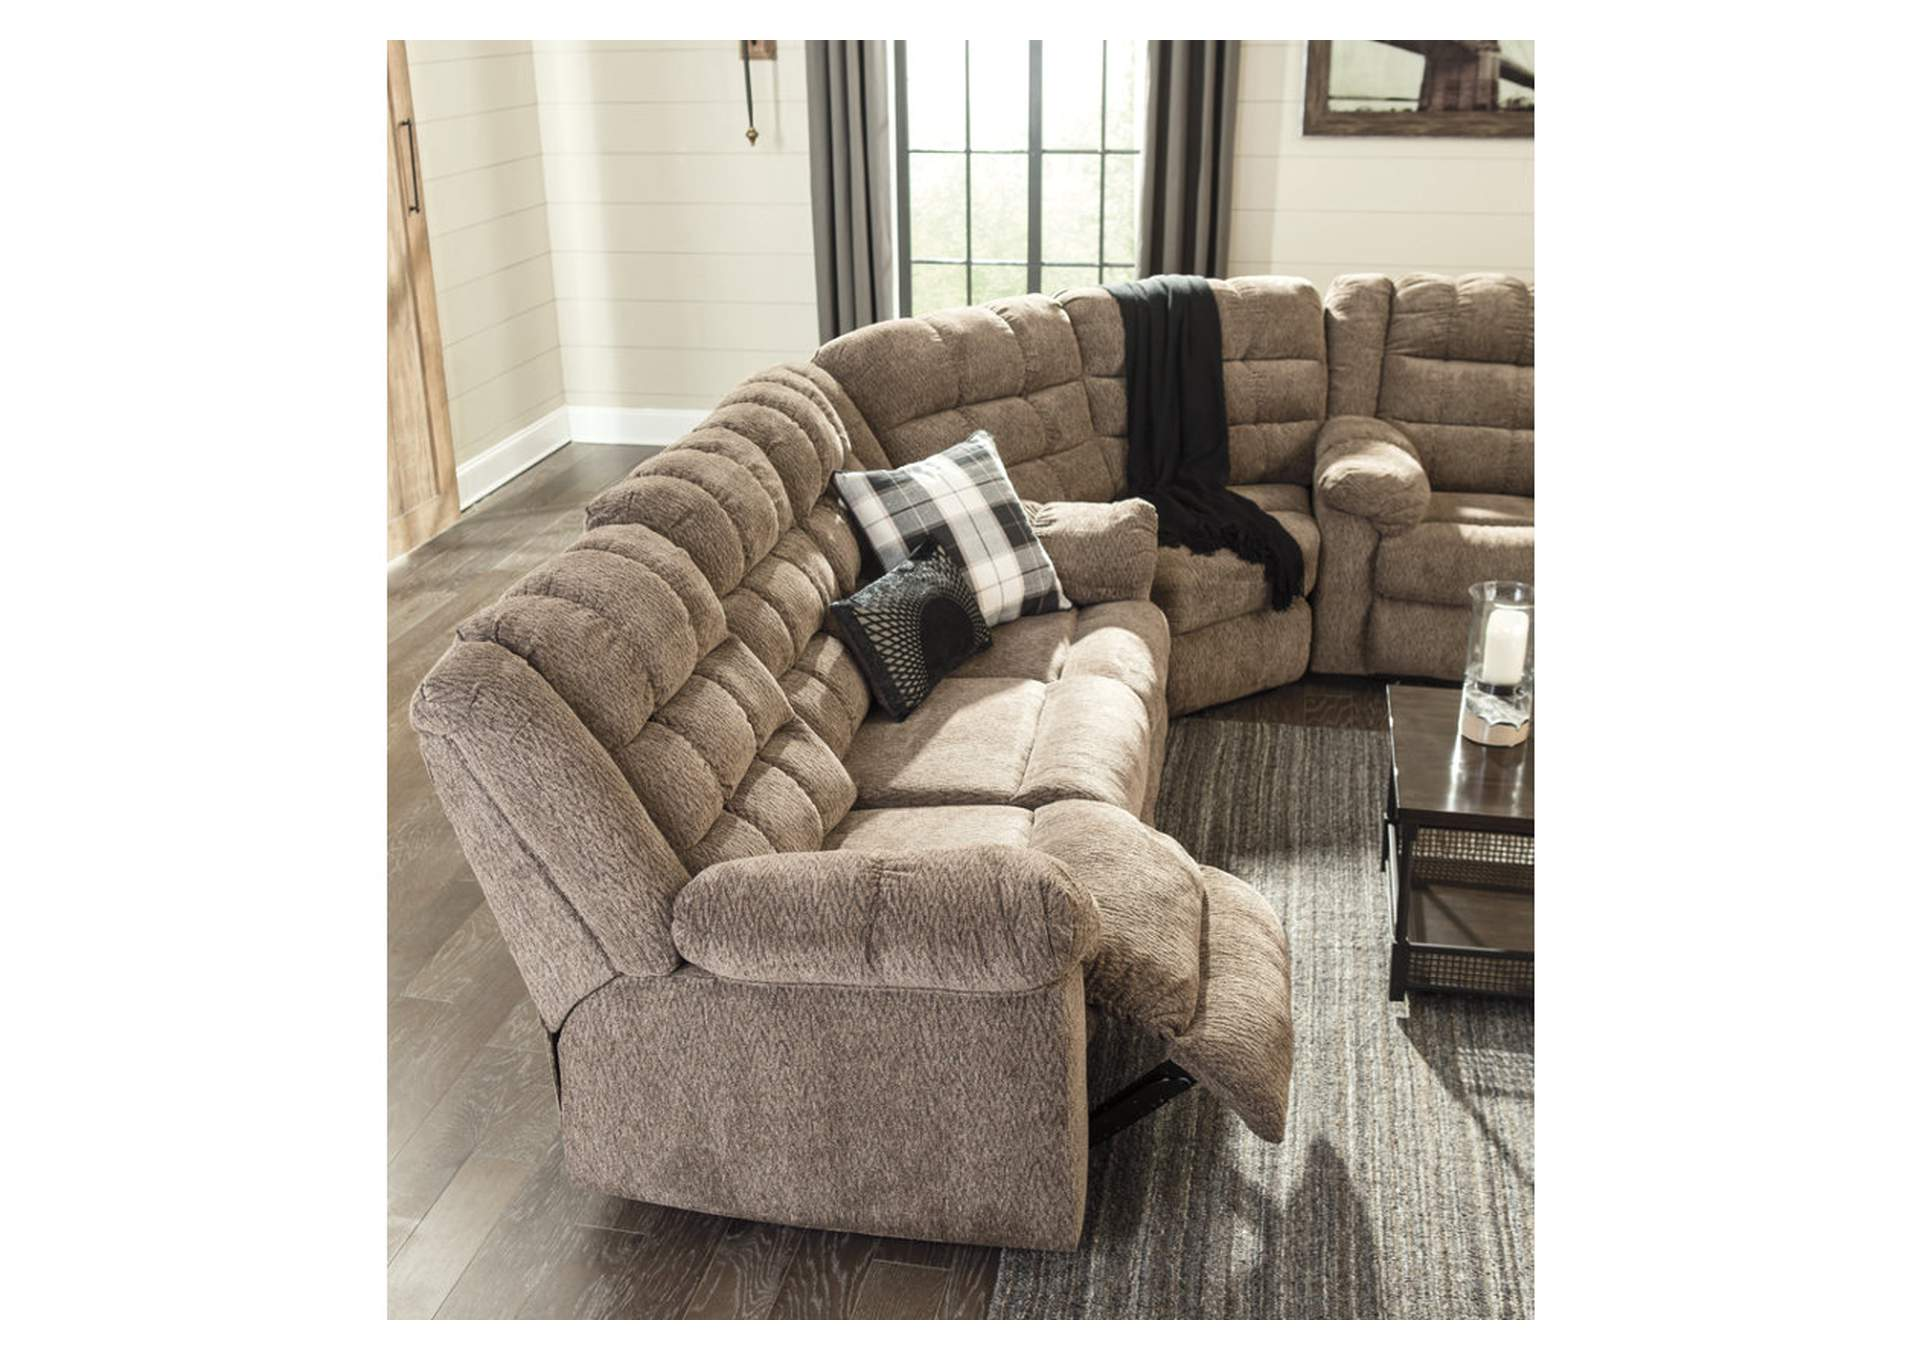 Workhorse Cocoa Reclining Sofa,Signature Design By Ashley